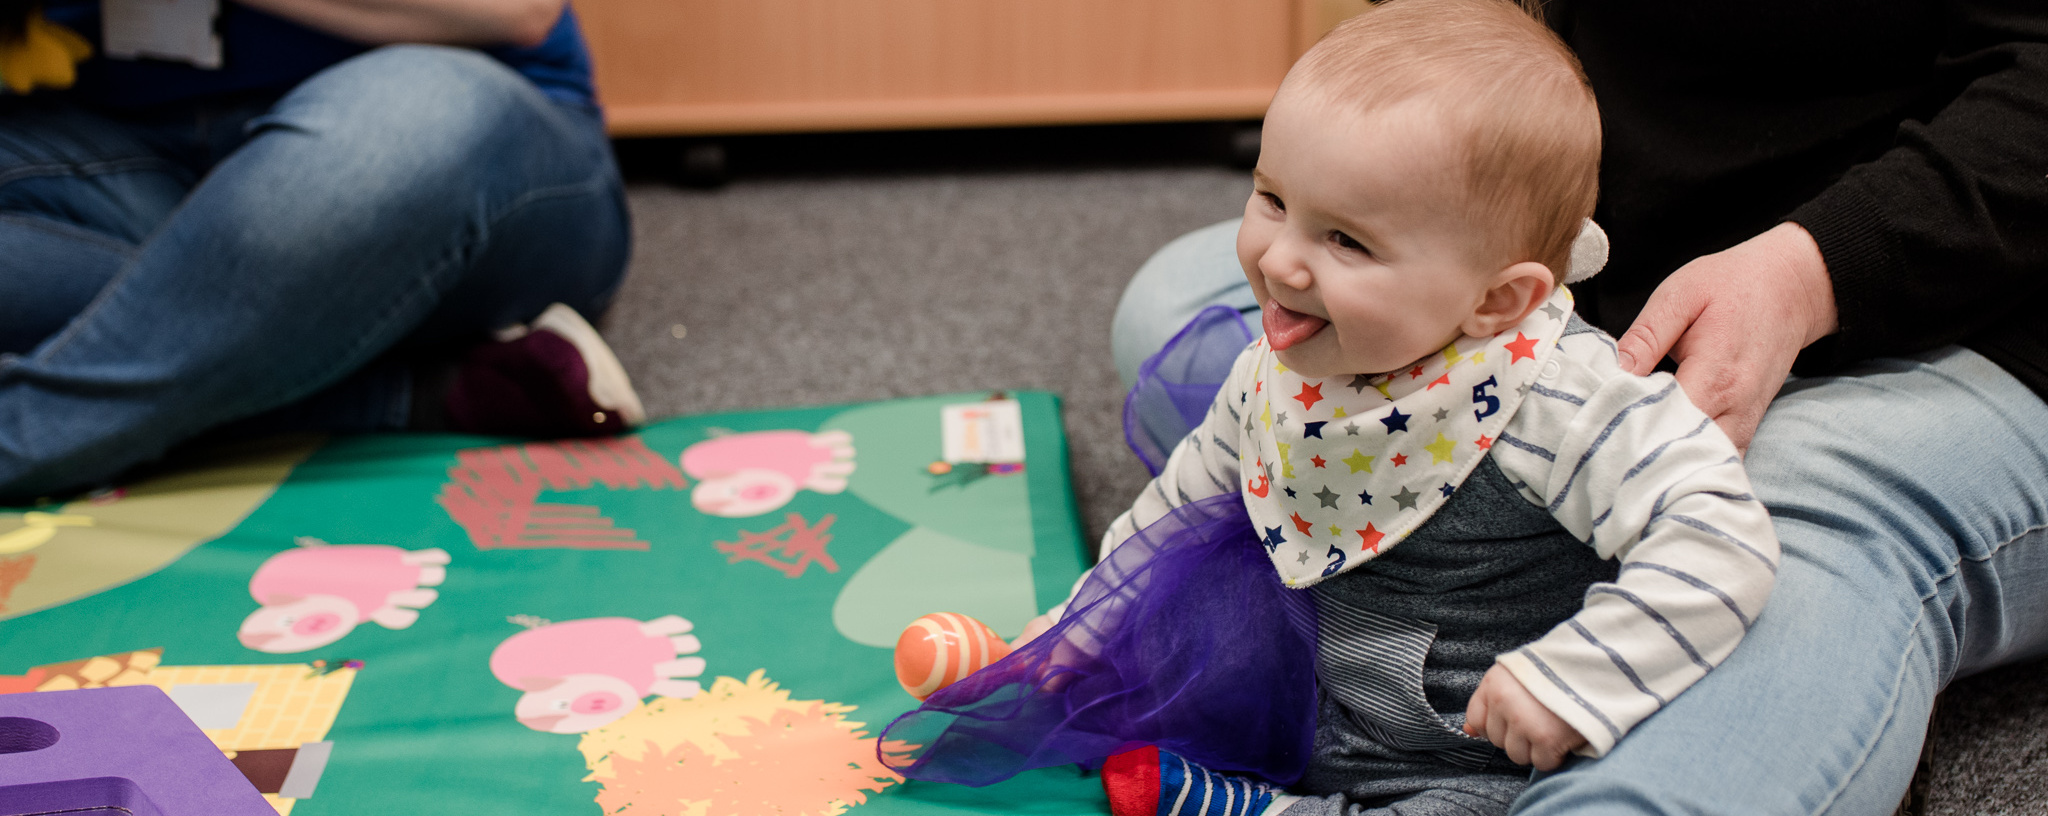 Baby smiling playing with rattle